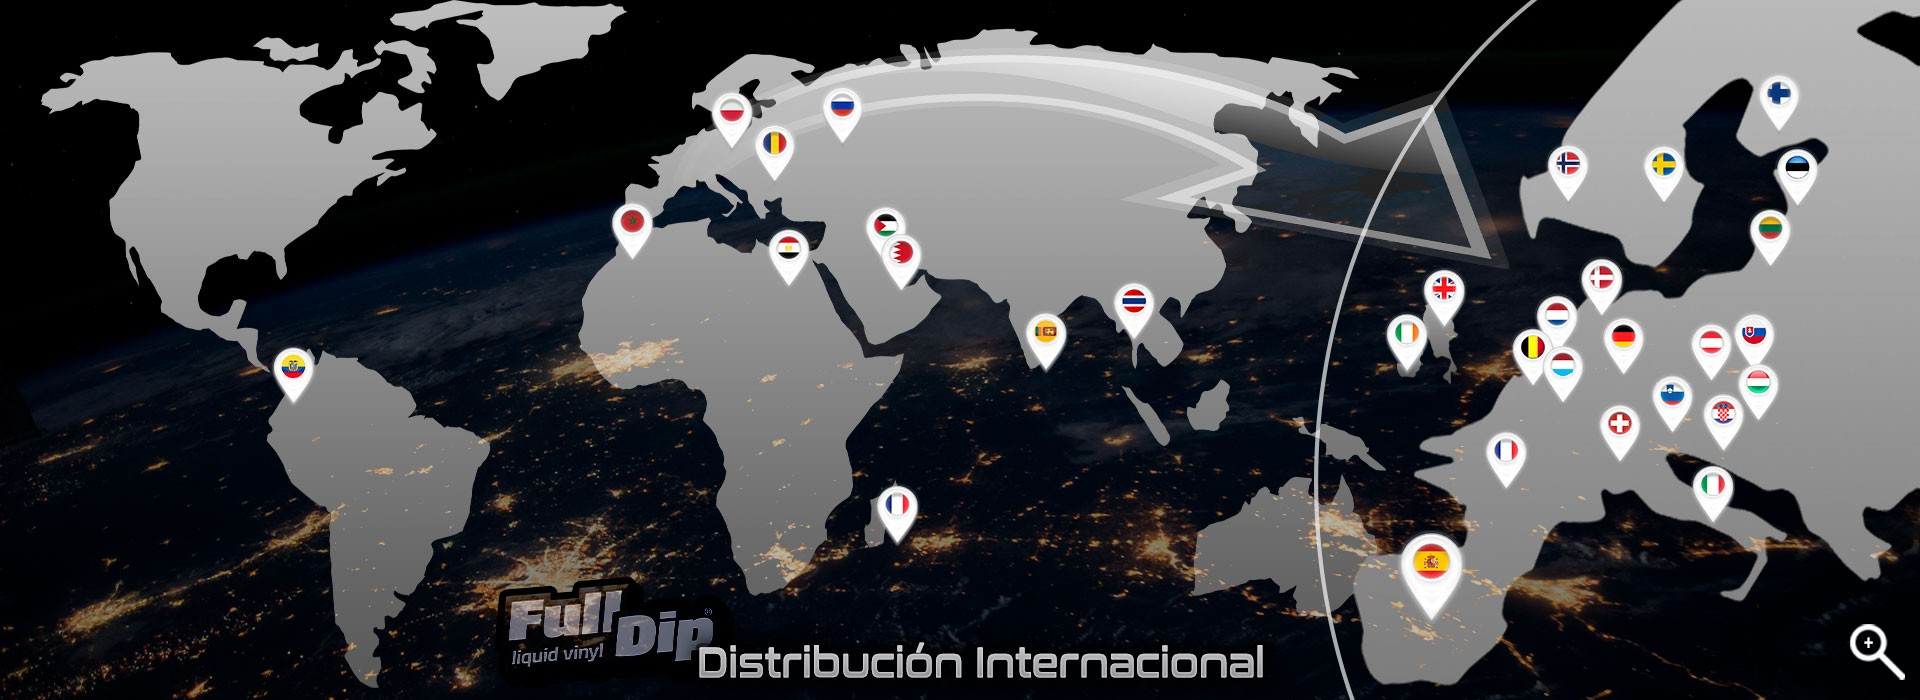 FullDip® Worldwide Distribution